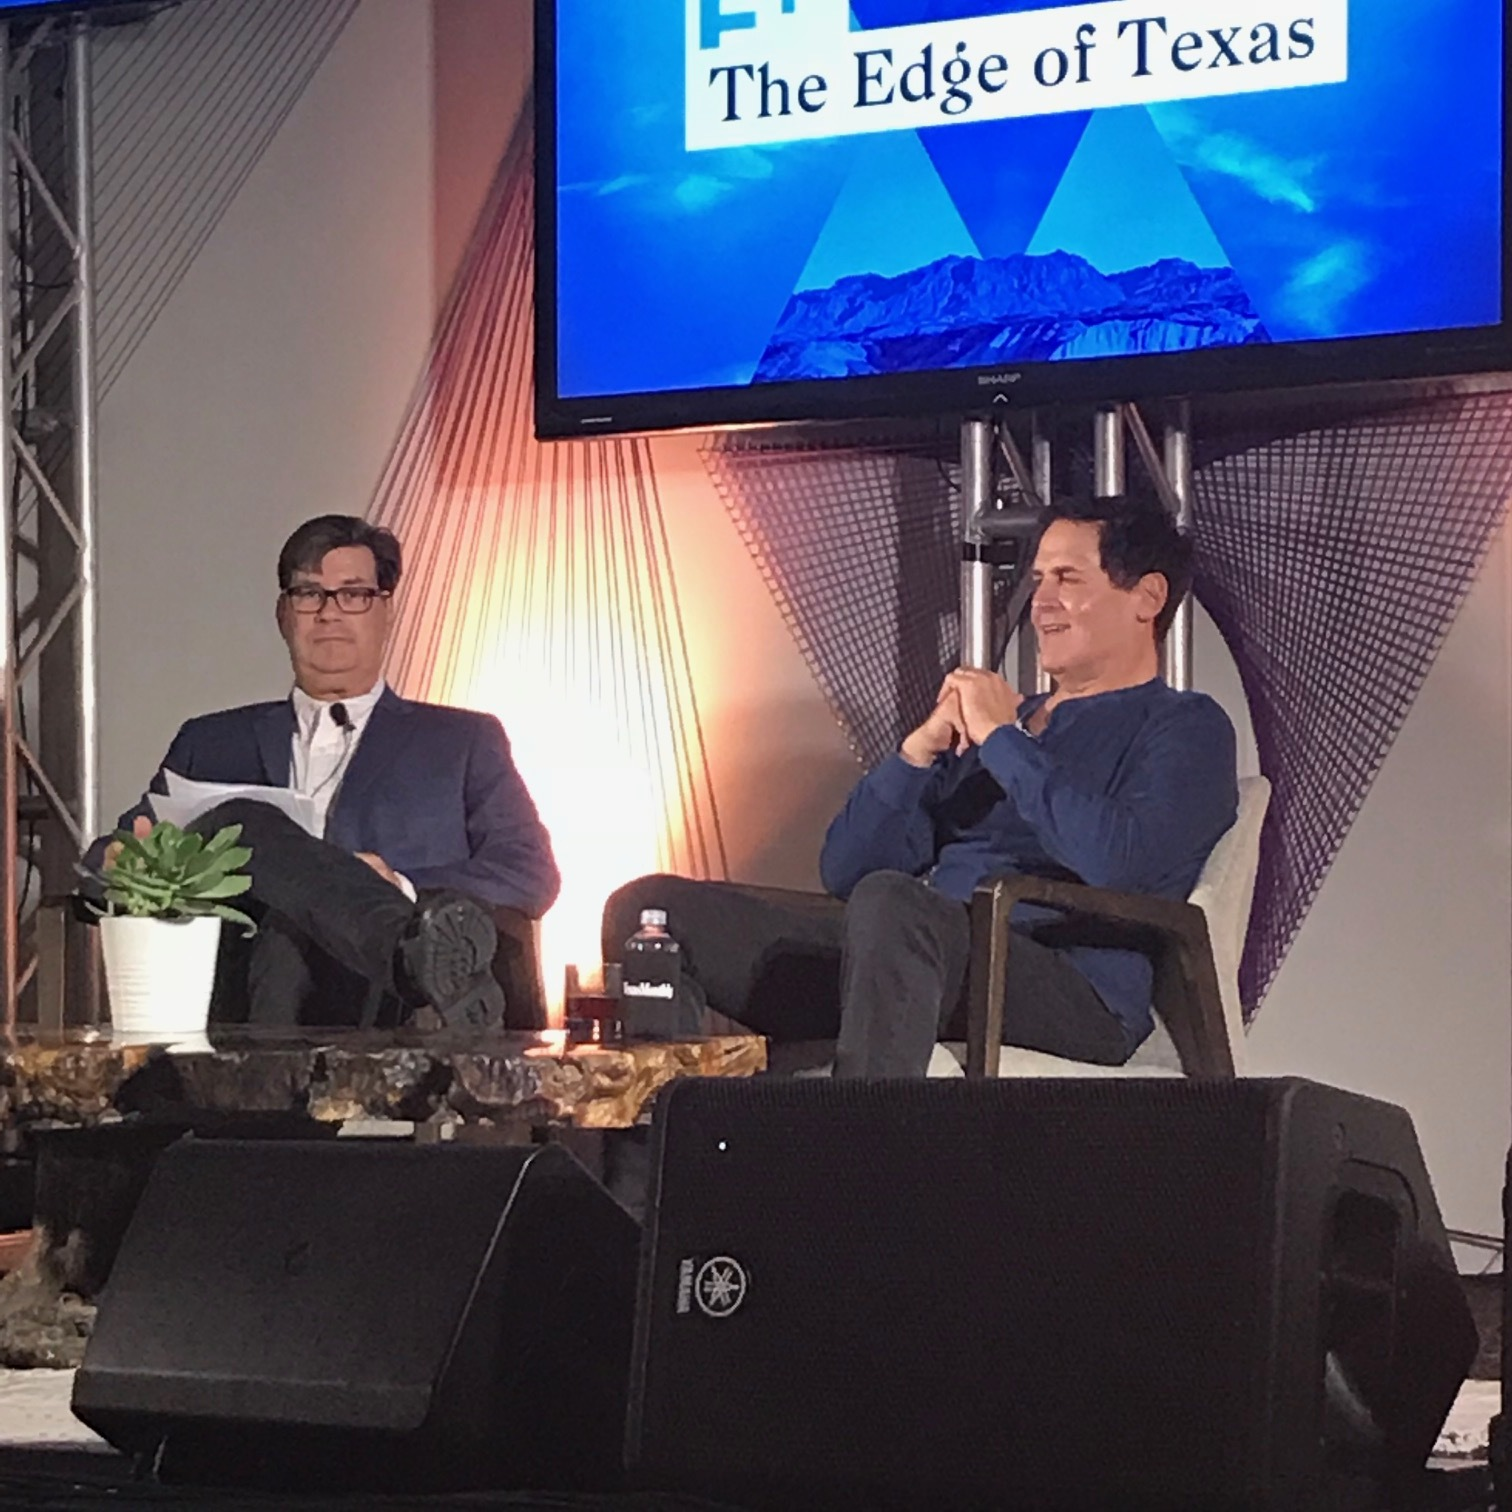 Skip Hollandsworth interviewed Mark Cuban at the Joule Hotel at the Edge of Texas event.